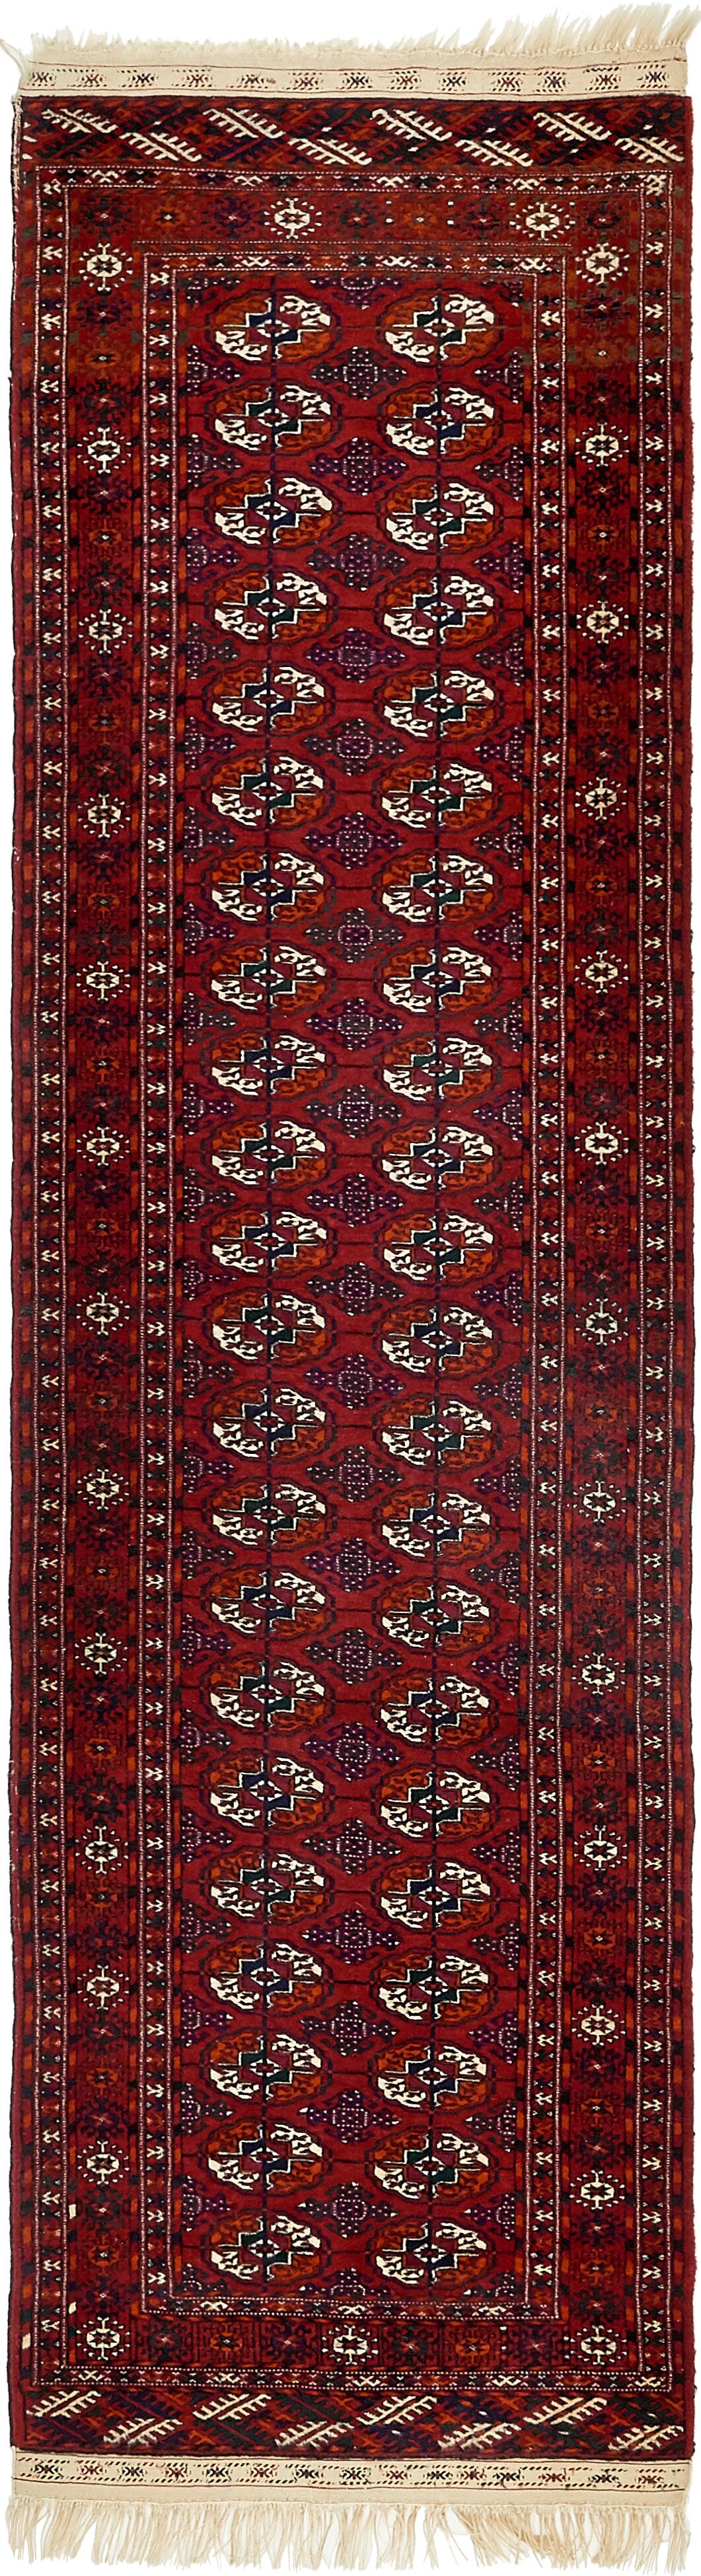 One-of-a-Kind Bunceton Runner Hand-Knotted Wool Red/Black Area Rug